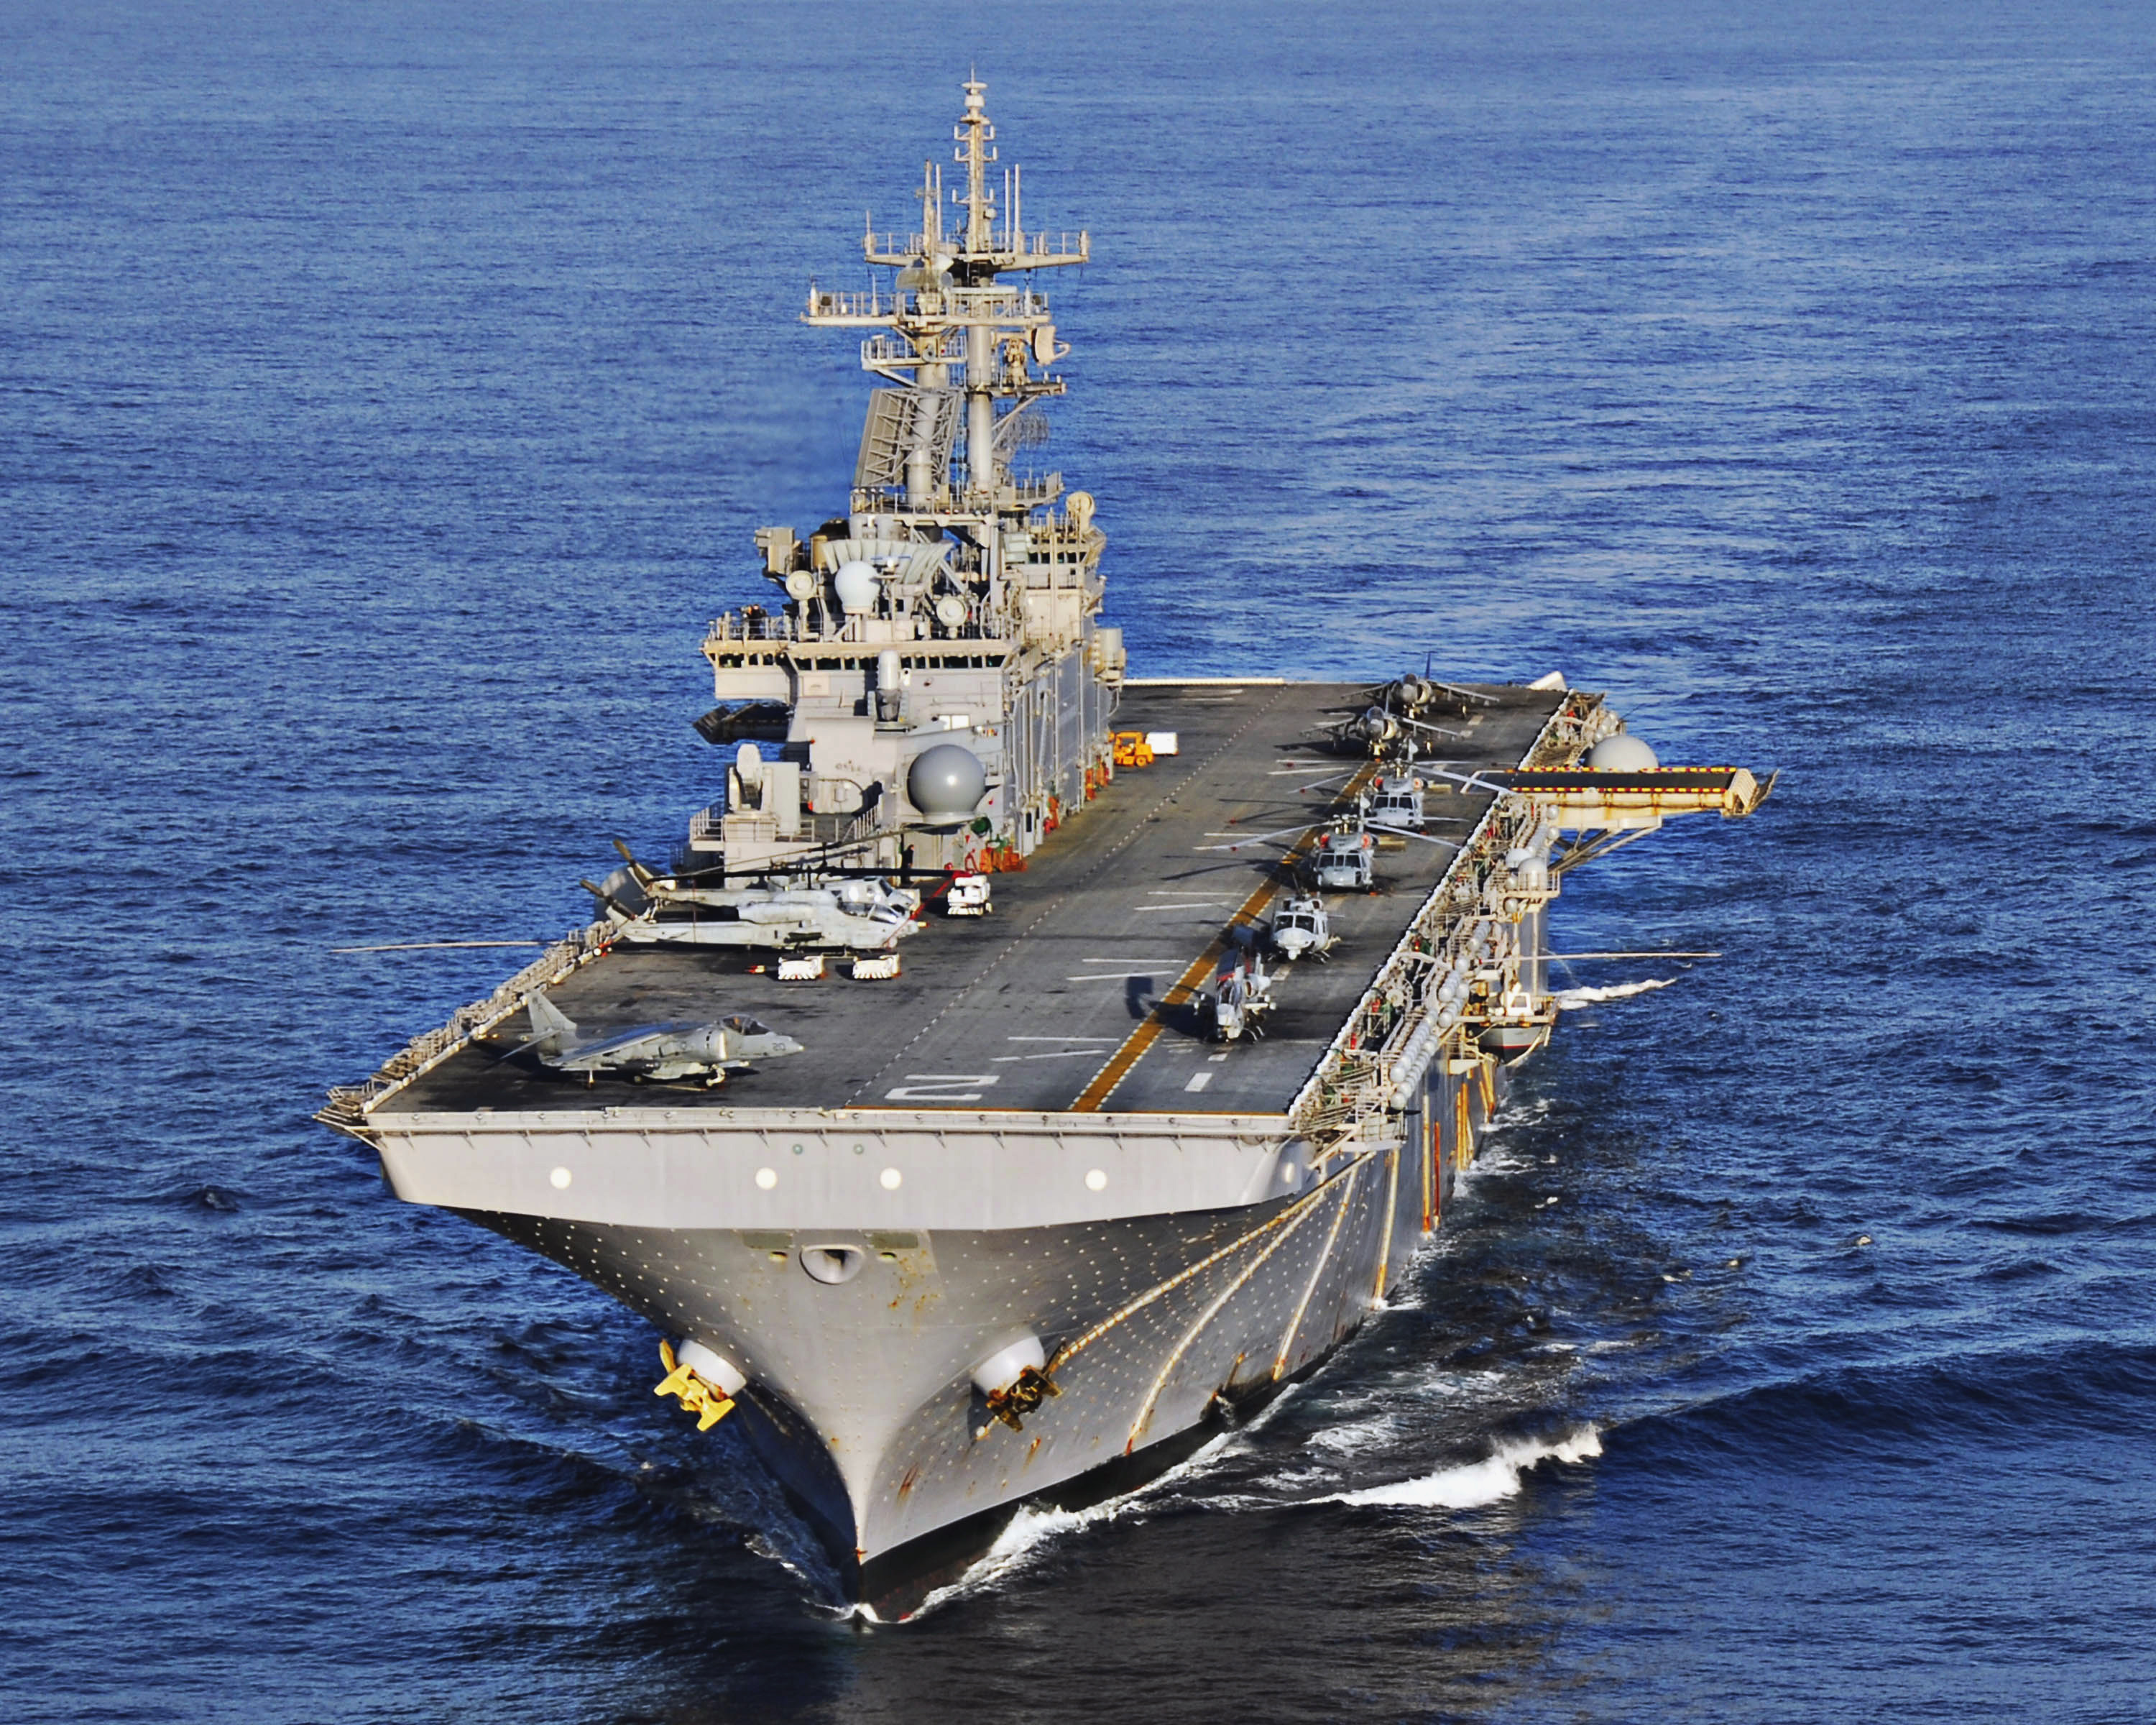 USS Essex at sea